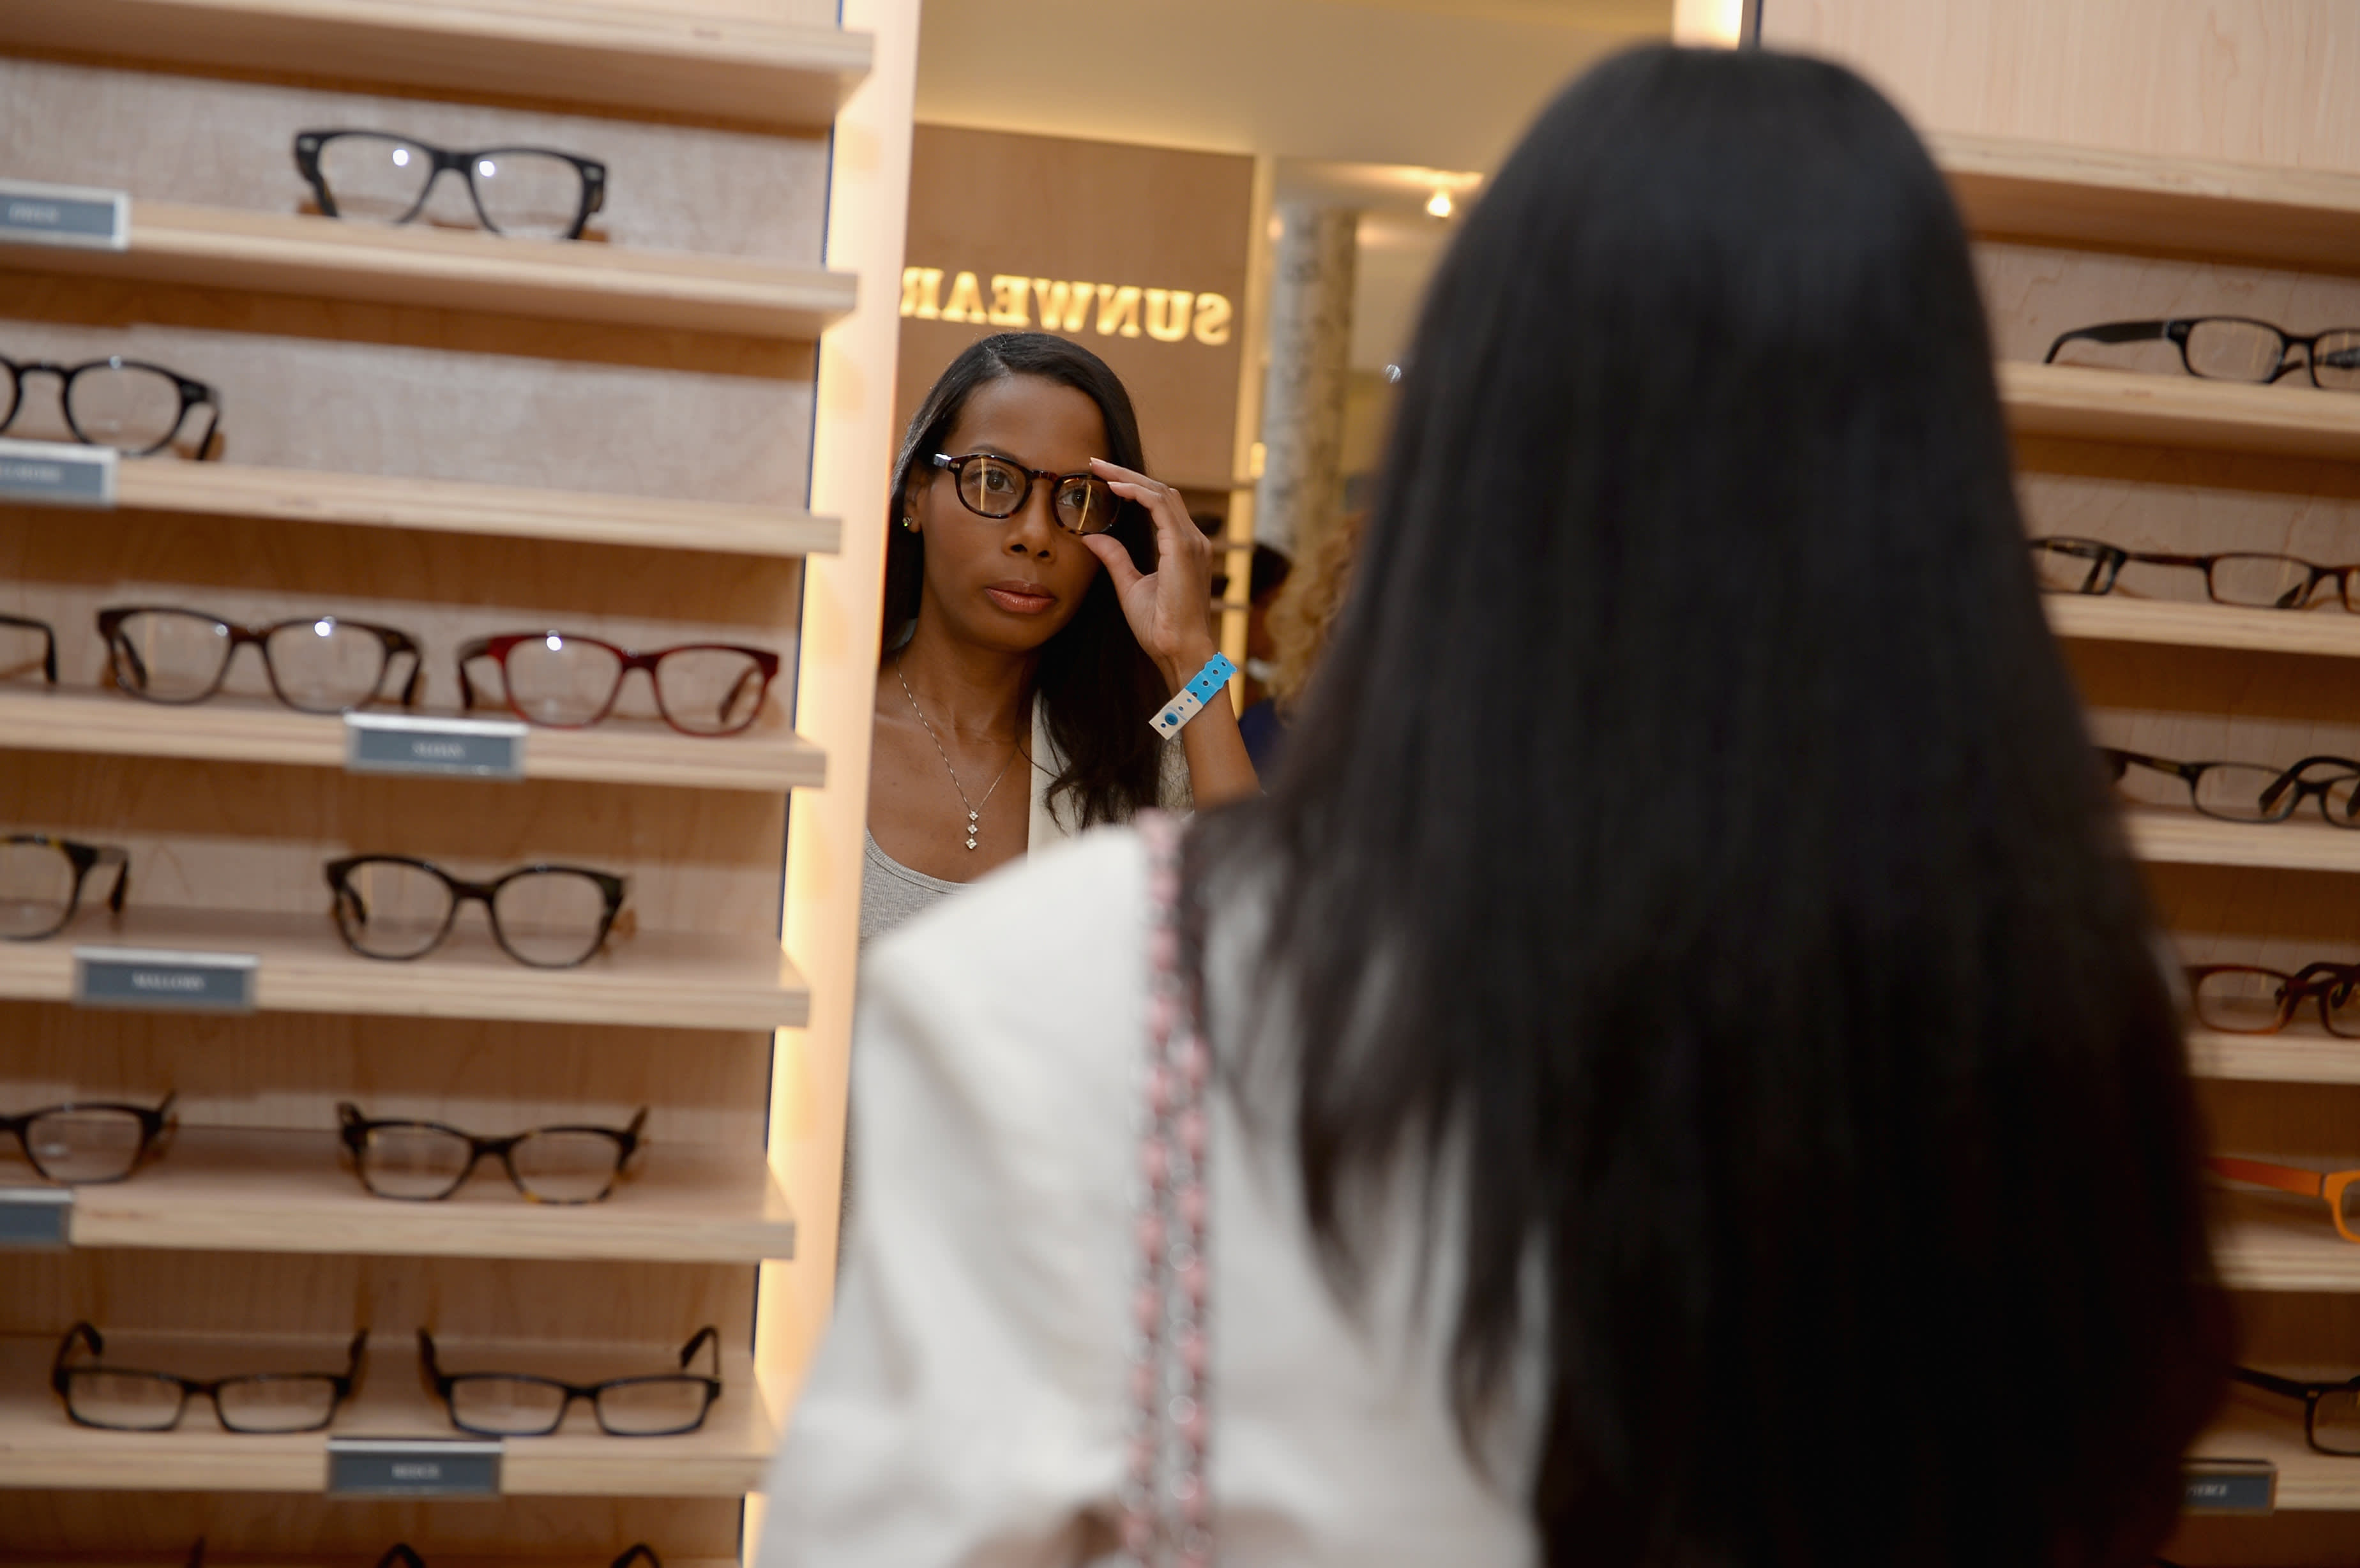 Eyeglass retailer Warby Parker in IPO filing reveals rising sales—but also widening losses